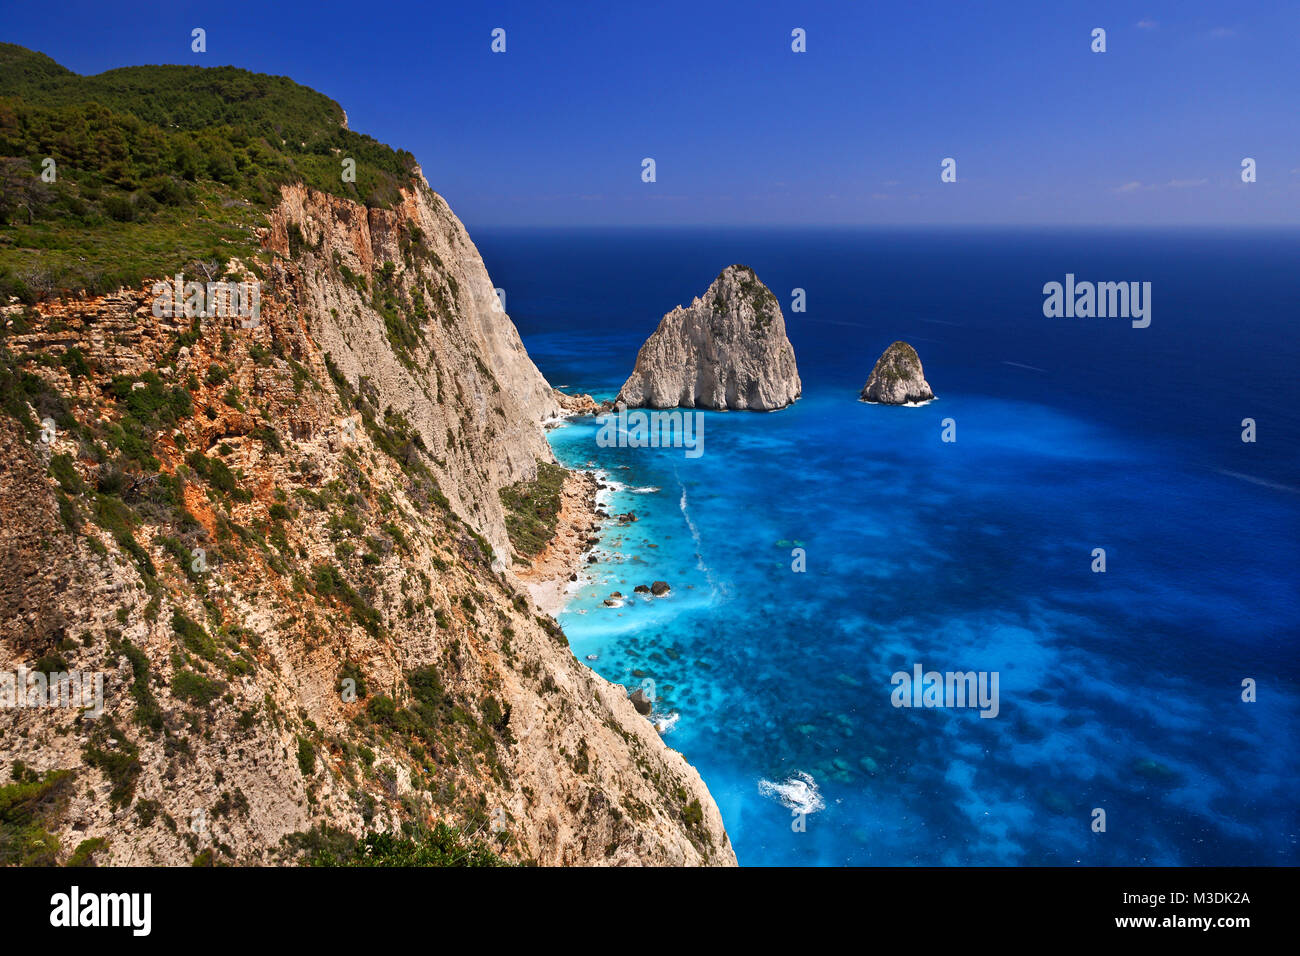 Slope over turquoise color waters in Zakynthos, Ionian islands, Greece. - Stock Image